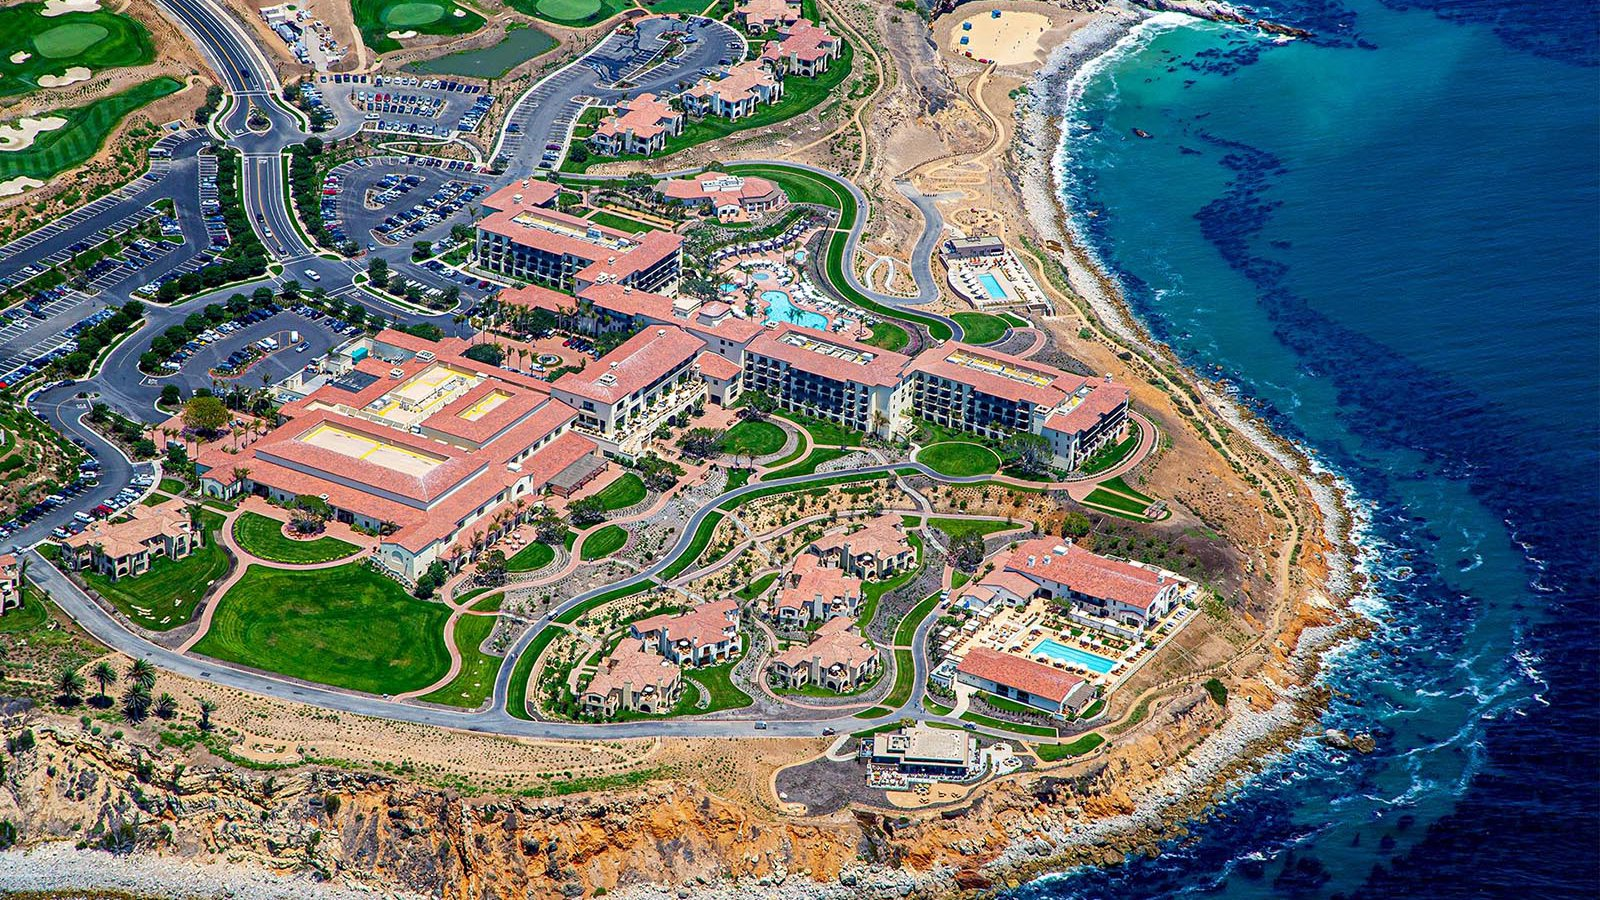 Commercial real estate photograph of the Terranea Resort in Rancho Palos Verdes, California